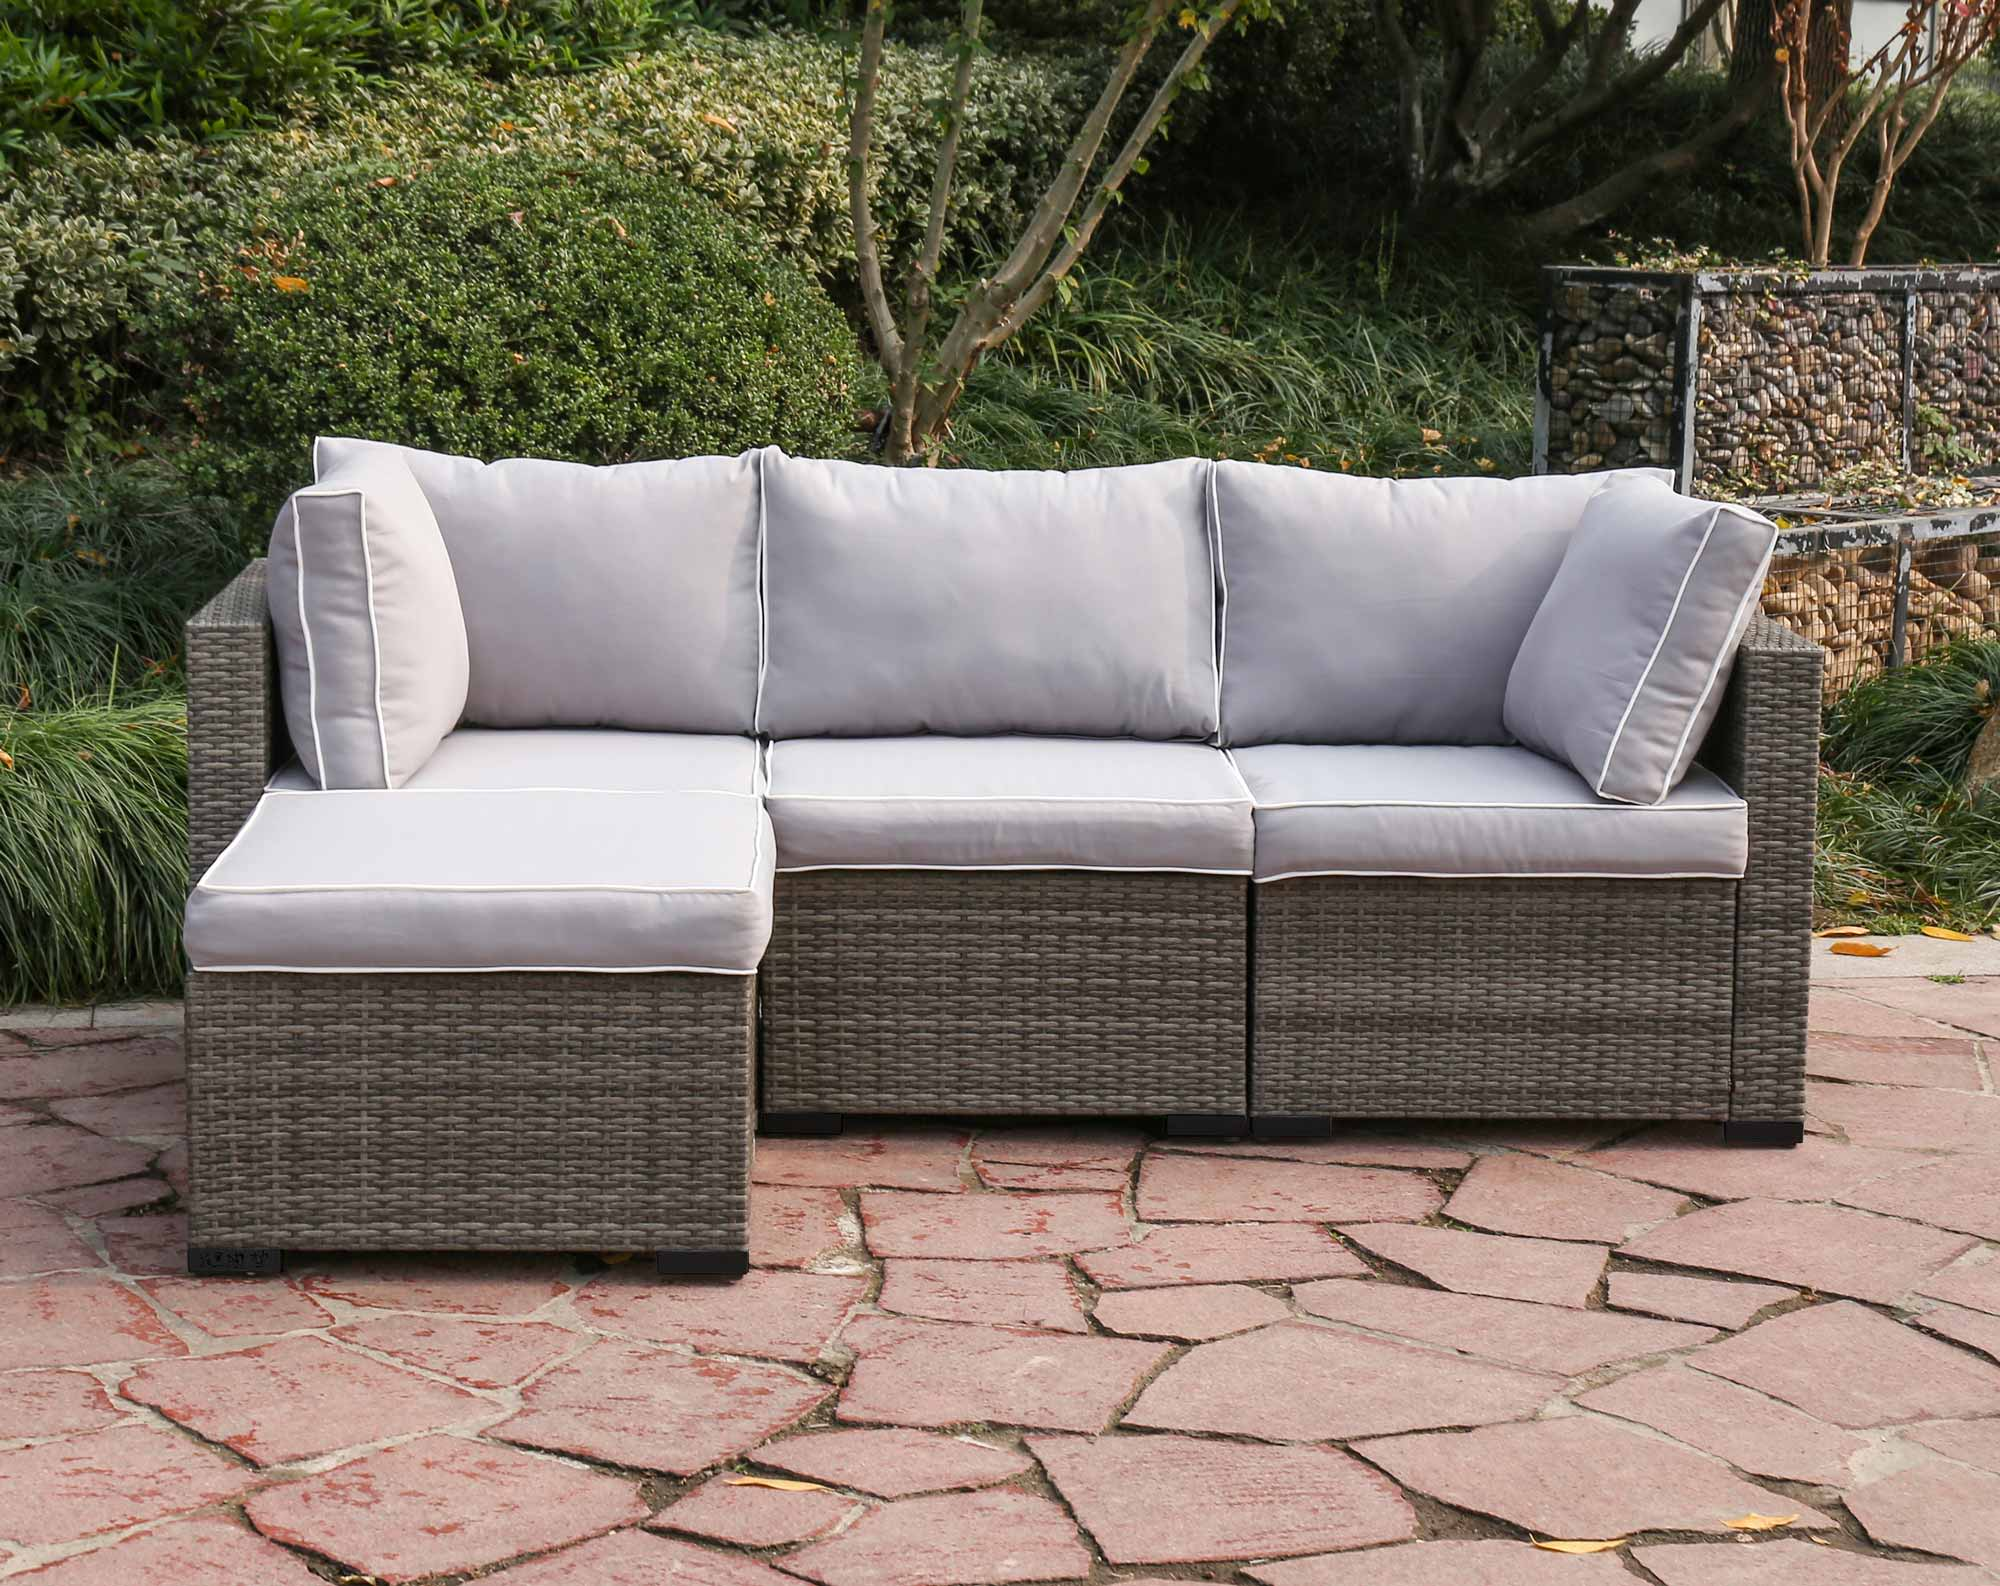 Lounge 4 Piece Wicker Modular Sectional